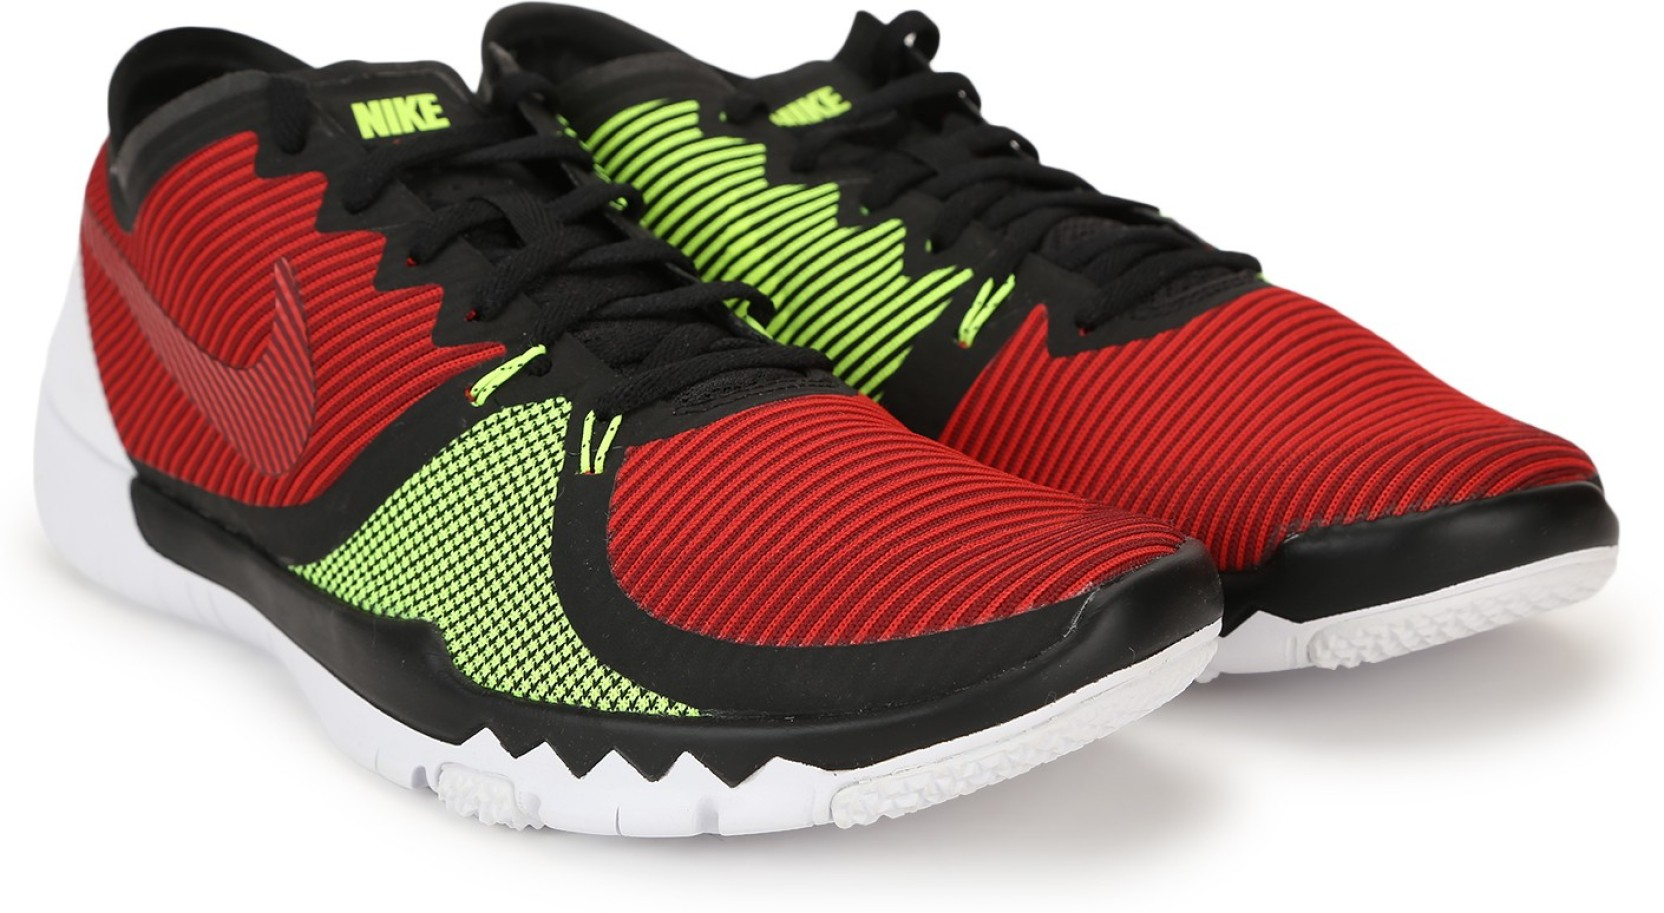 new arrival 7f4ac a02cf Nike FREE TRAINER 3.0 V4 Training Shoes For Men (Red)